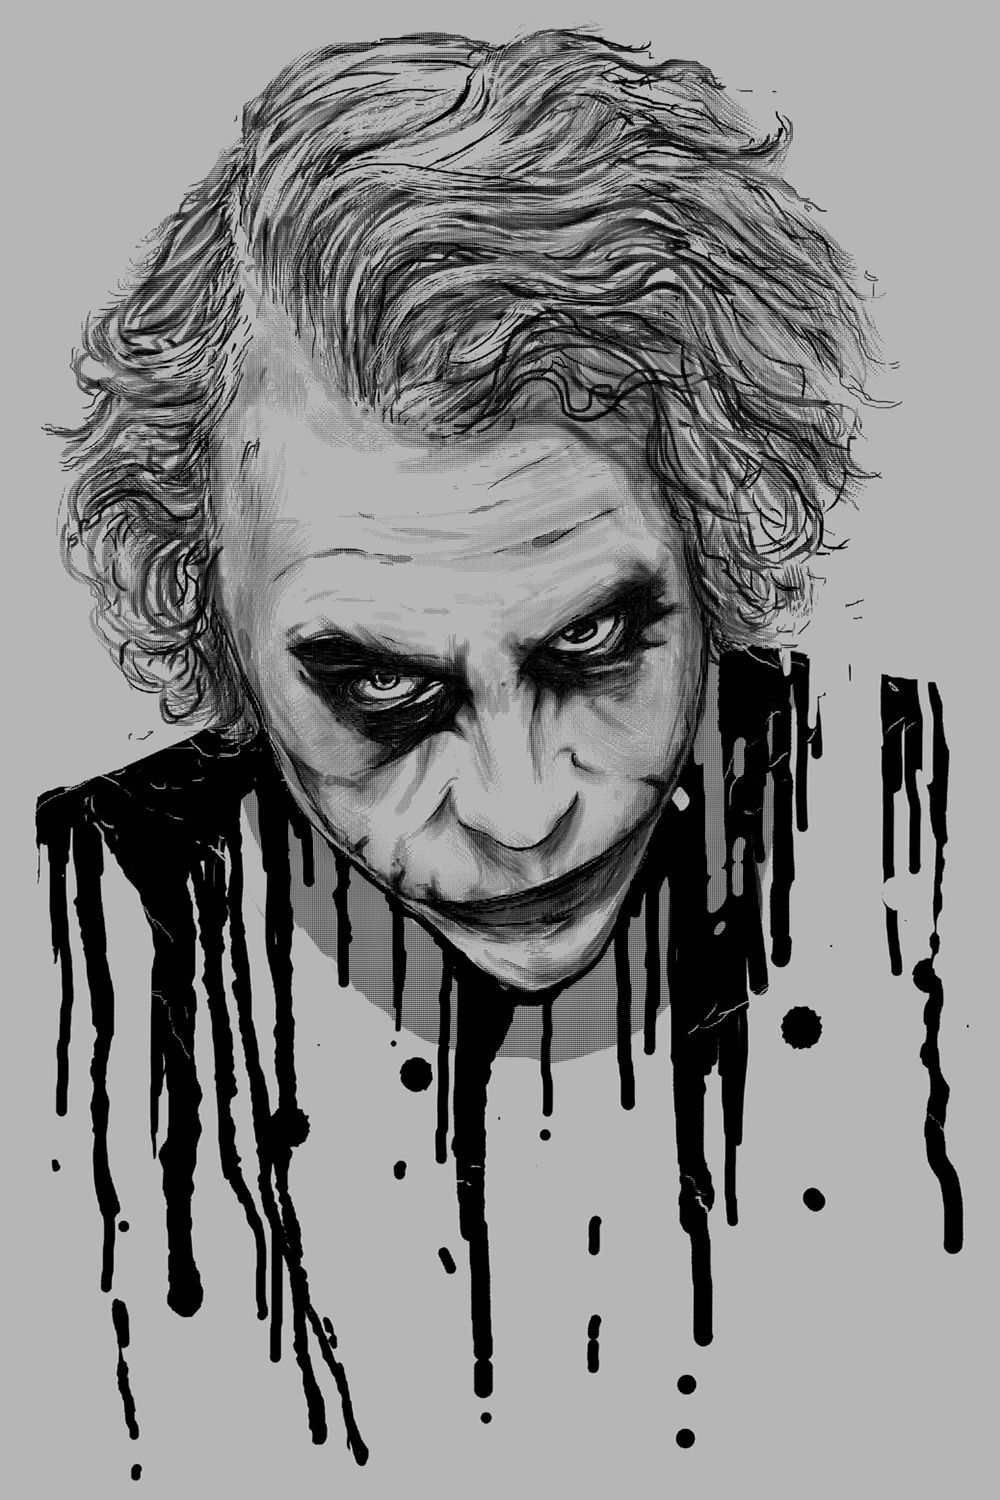 Joker Drawing Wallpapers Top Free Joker Drawing Backgrounds Wallpaperaccess